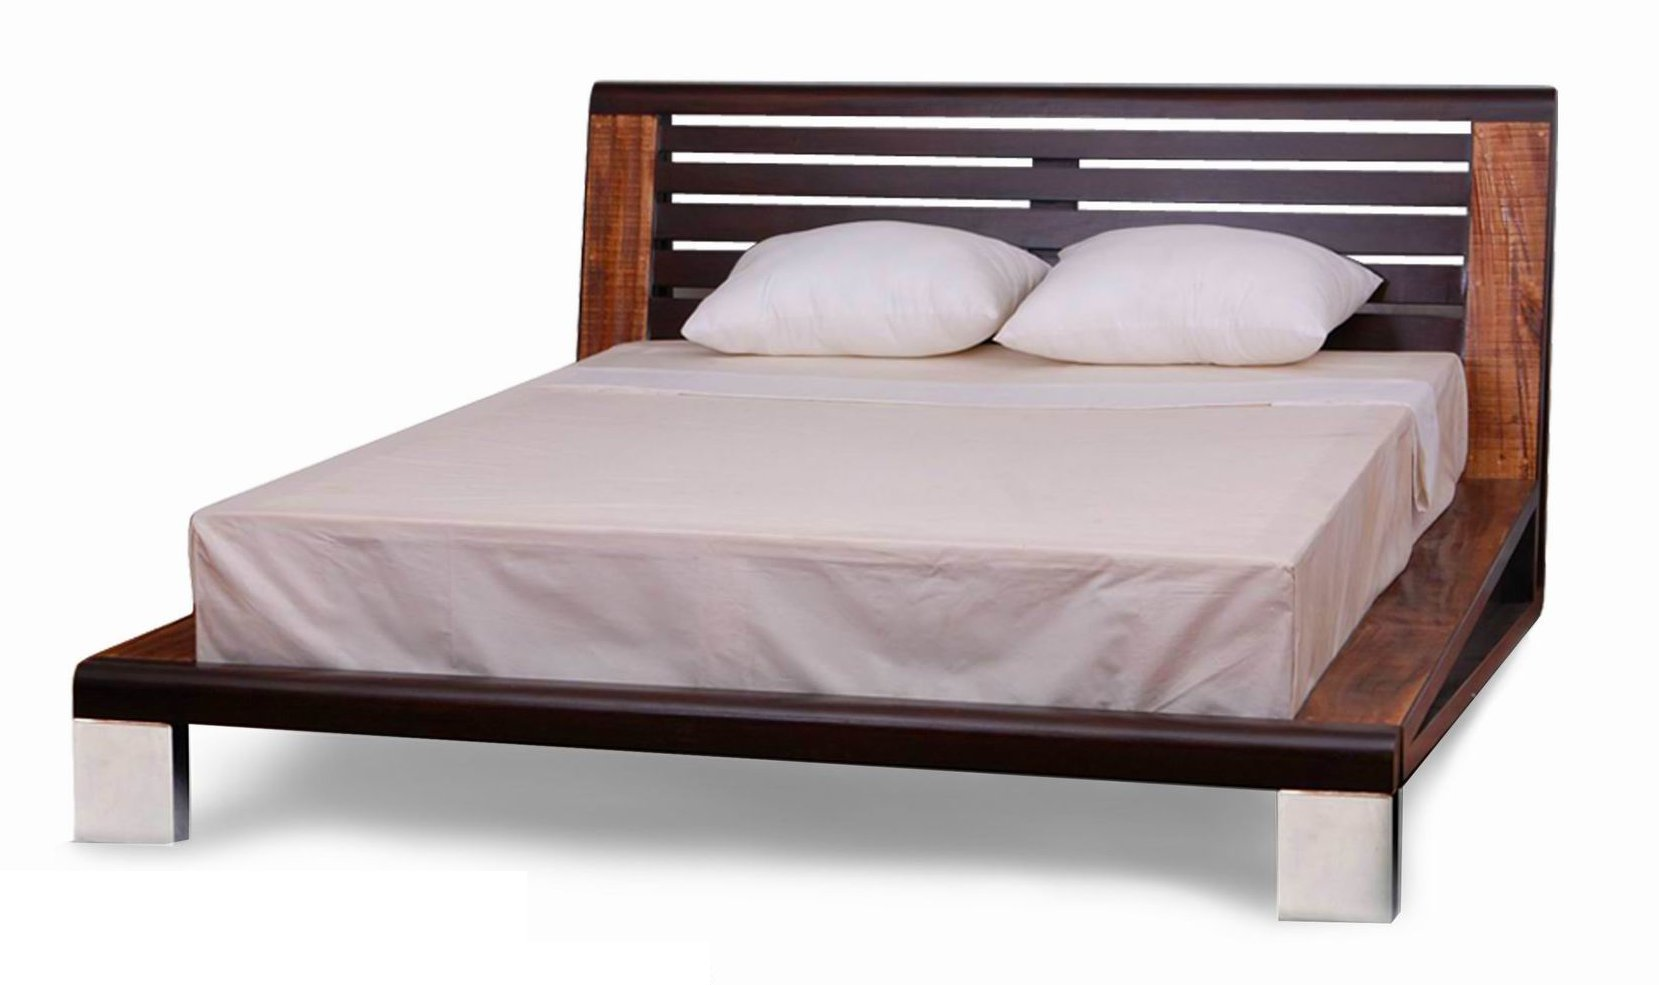 new york collection mahogany and from platform beds. Black Bedroom Furniture Sets. Home Design Ideas